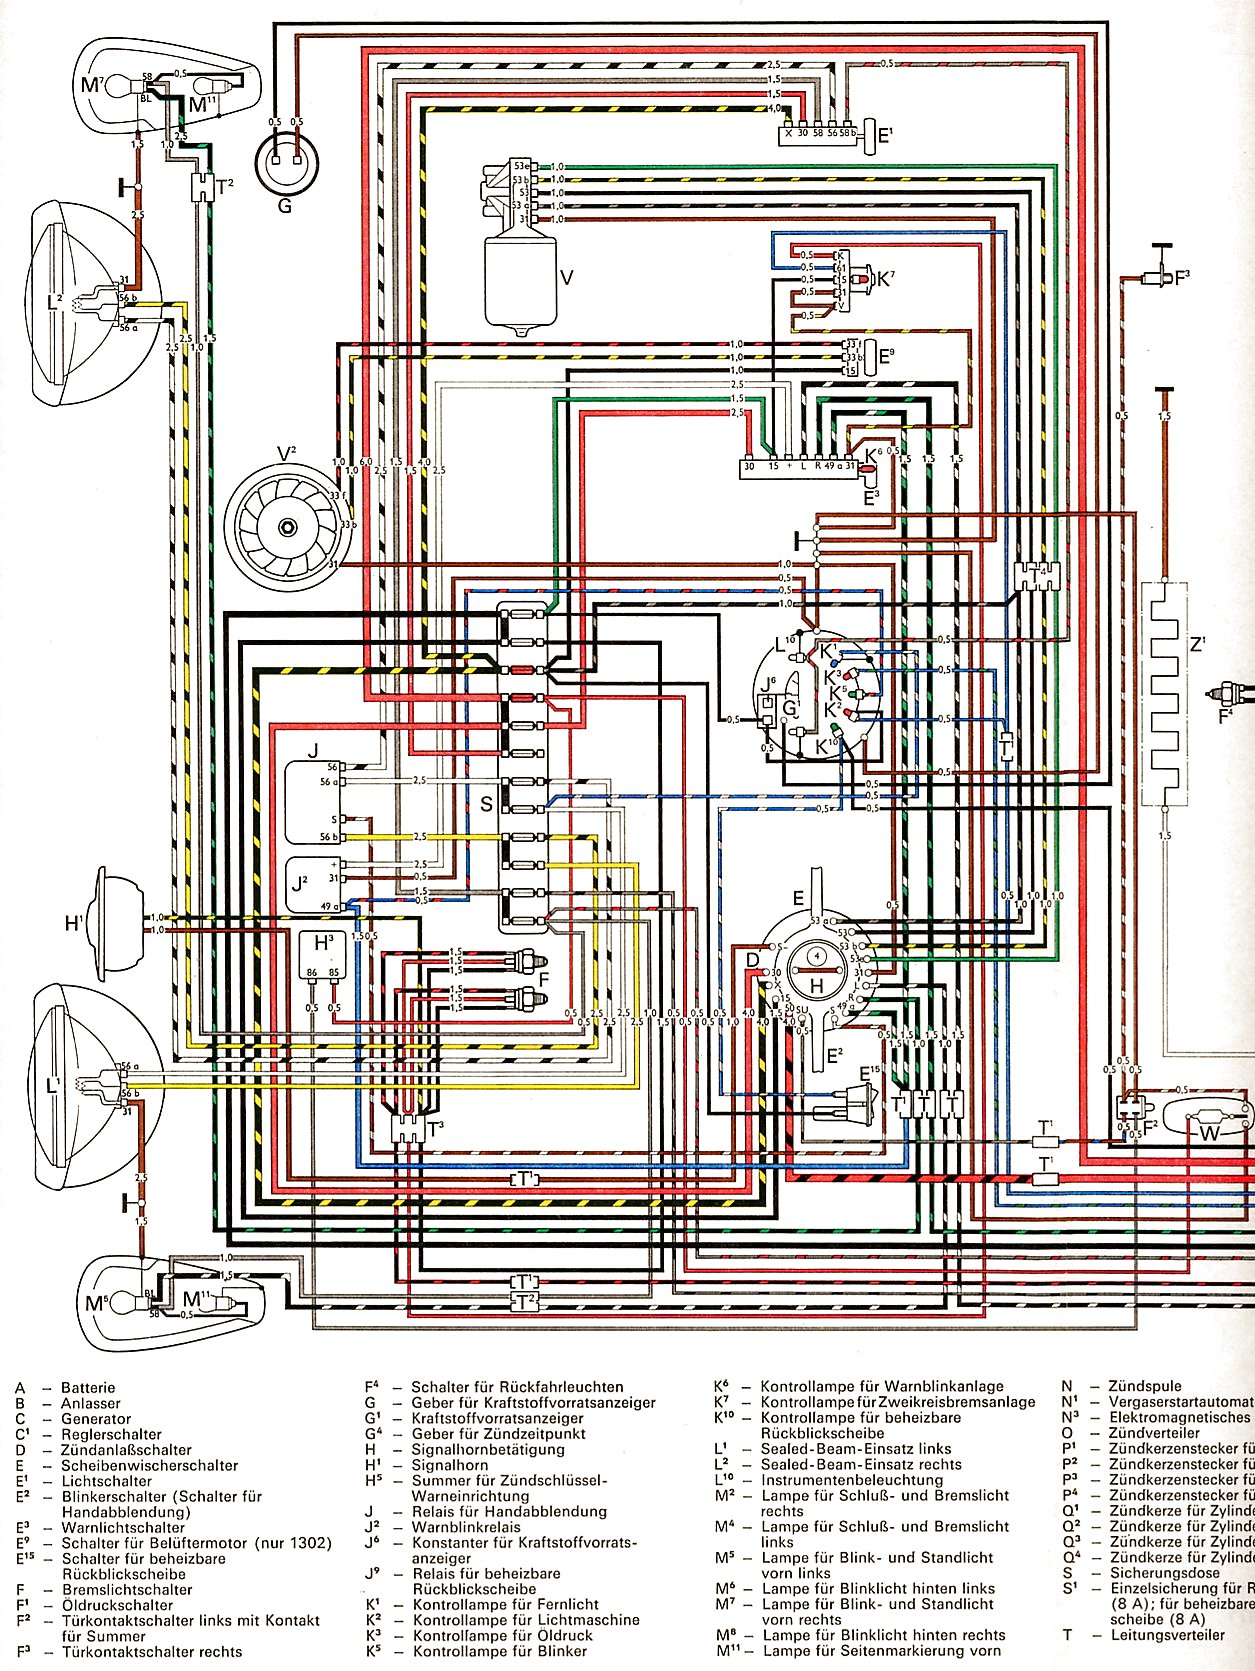 1300_and_1302_USA_from_August_1971 1 wiring help 1974 vw beetle shoptalkforums com vw bug wiring diagram at readyjetset.co